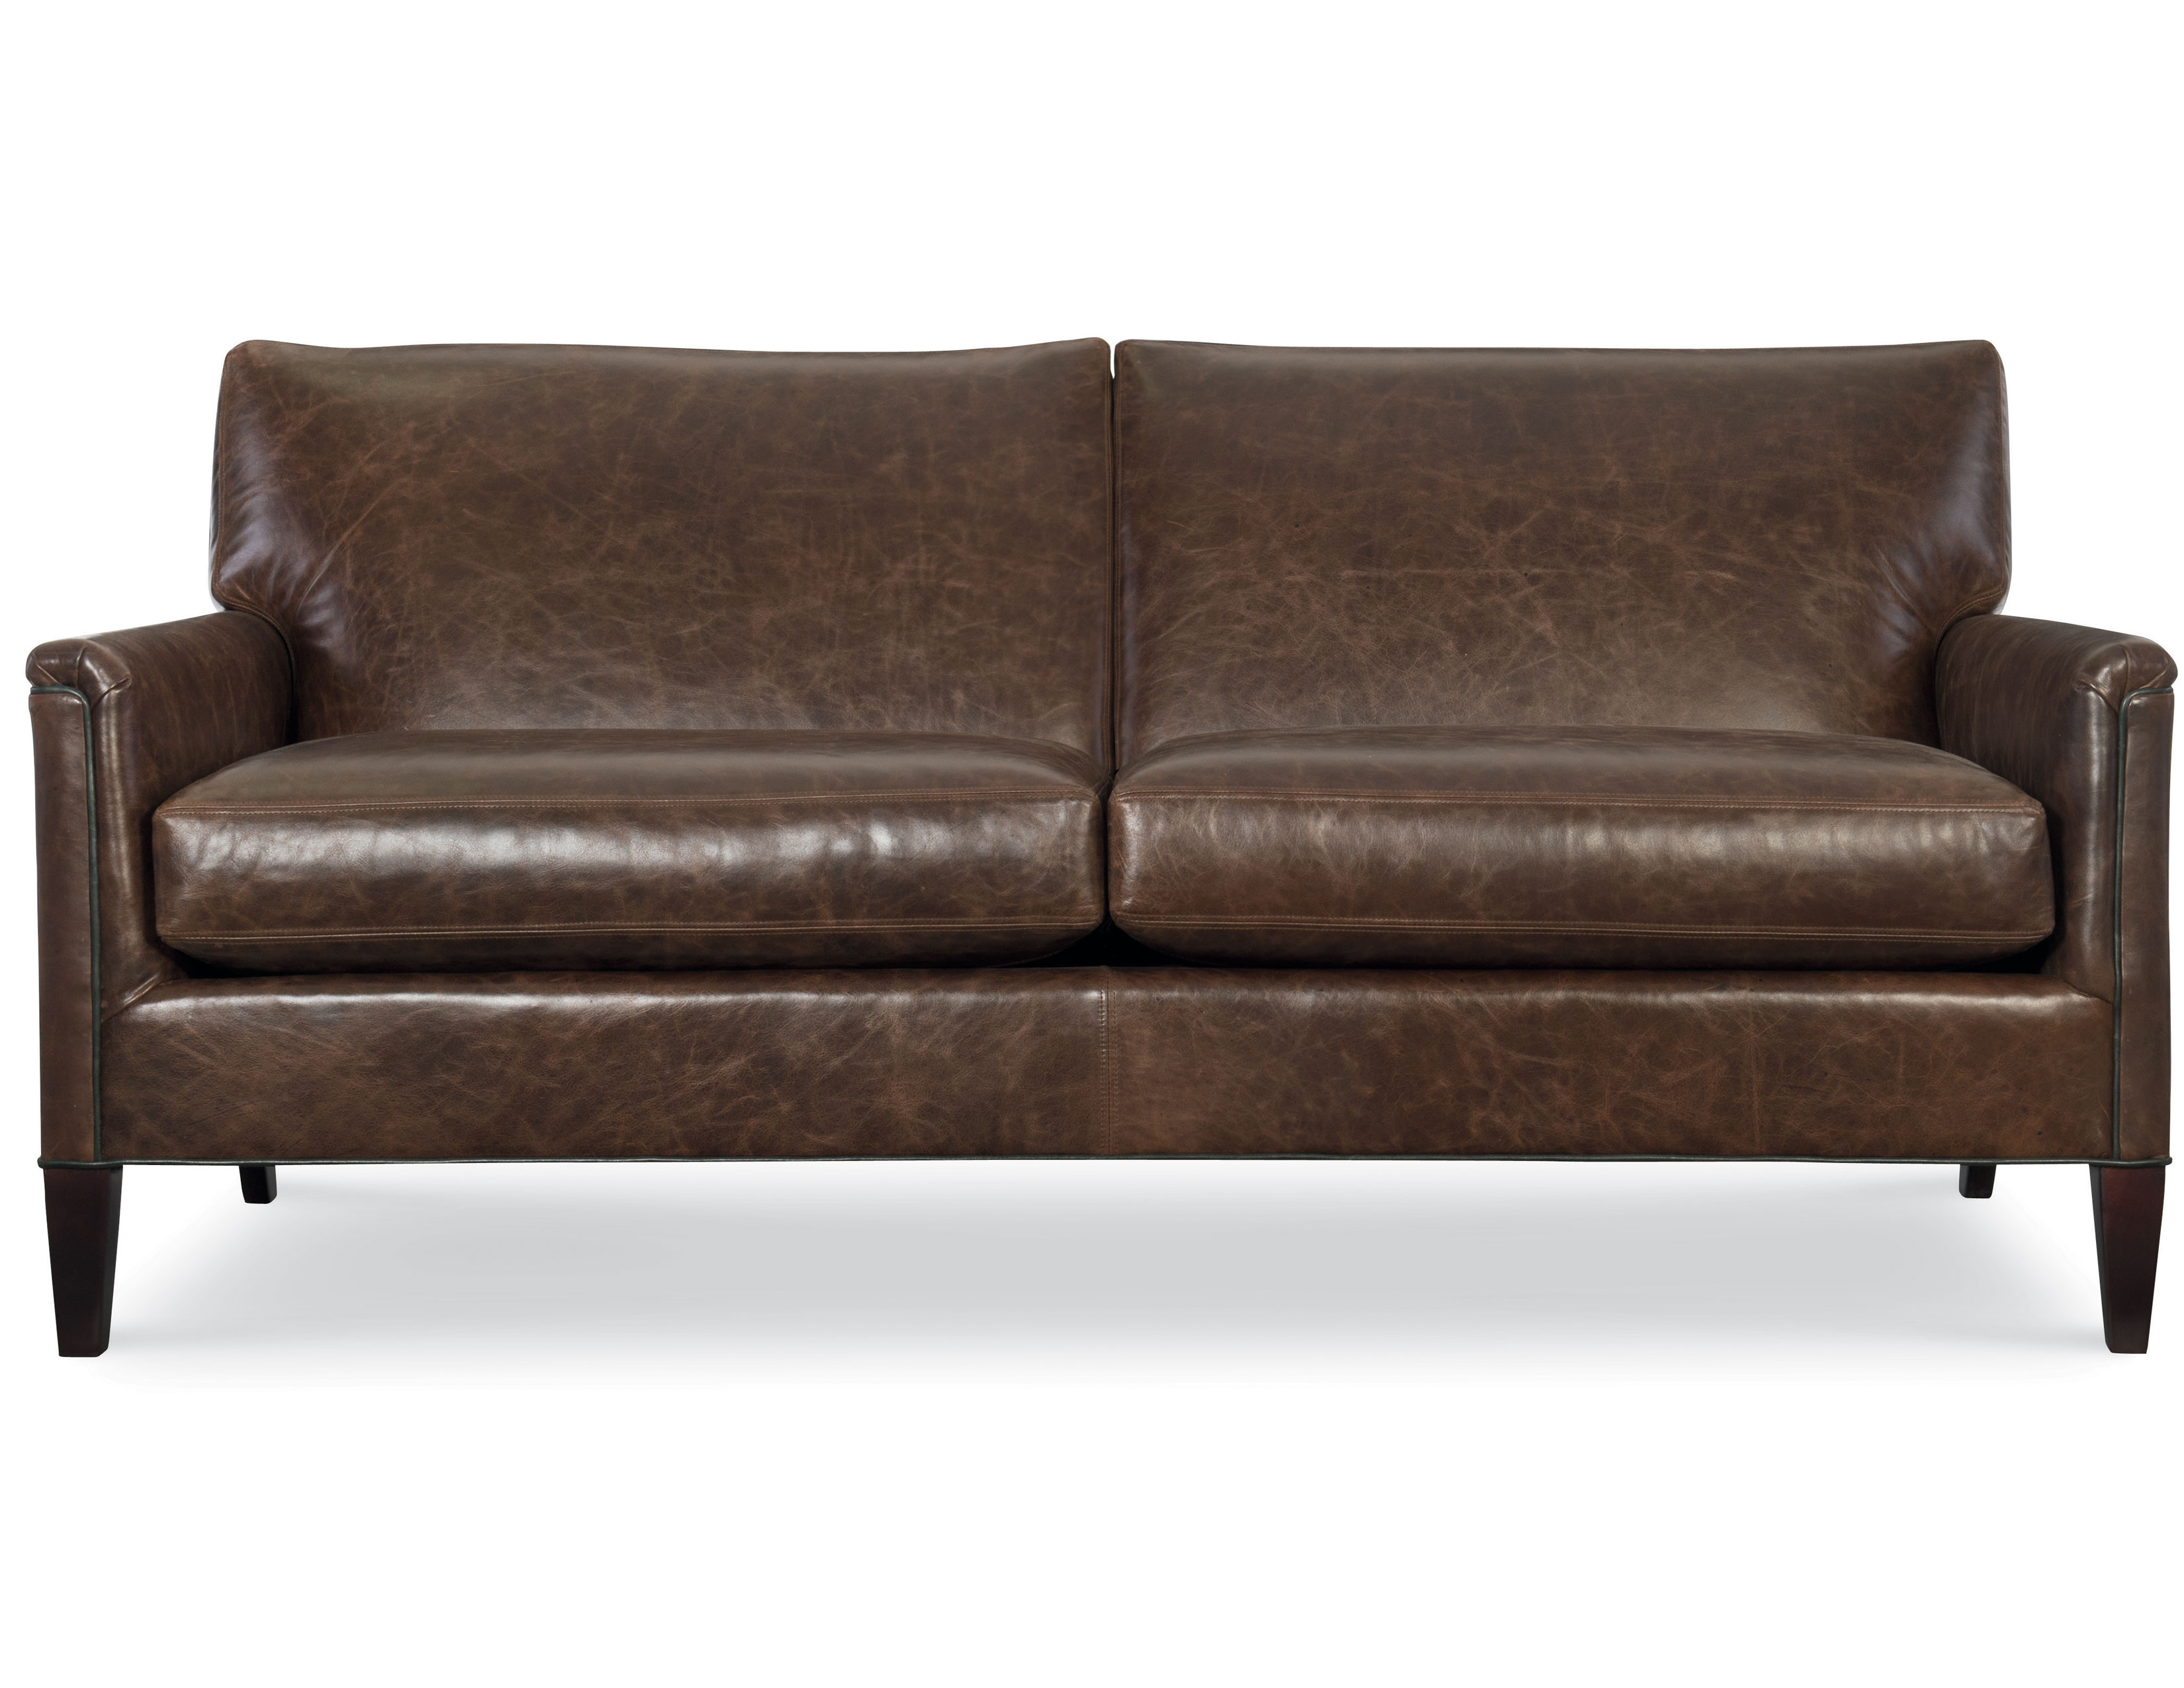 Superb Digby 72 83 Or 95 Sofa Sofas And Sectionals Gmtry Best Dining Table And Chair Ideas Images Gmtryco